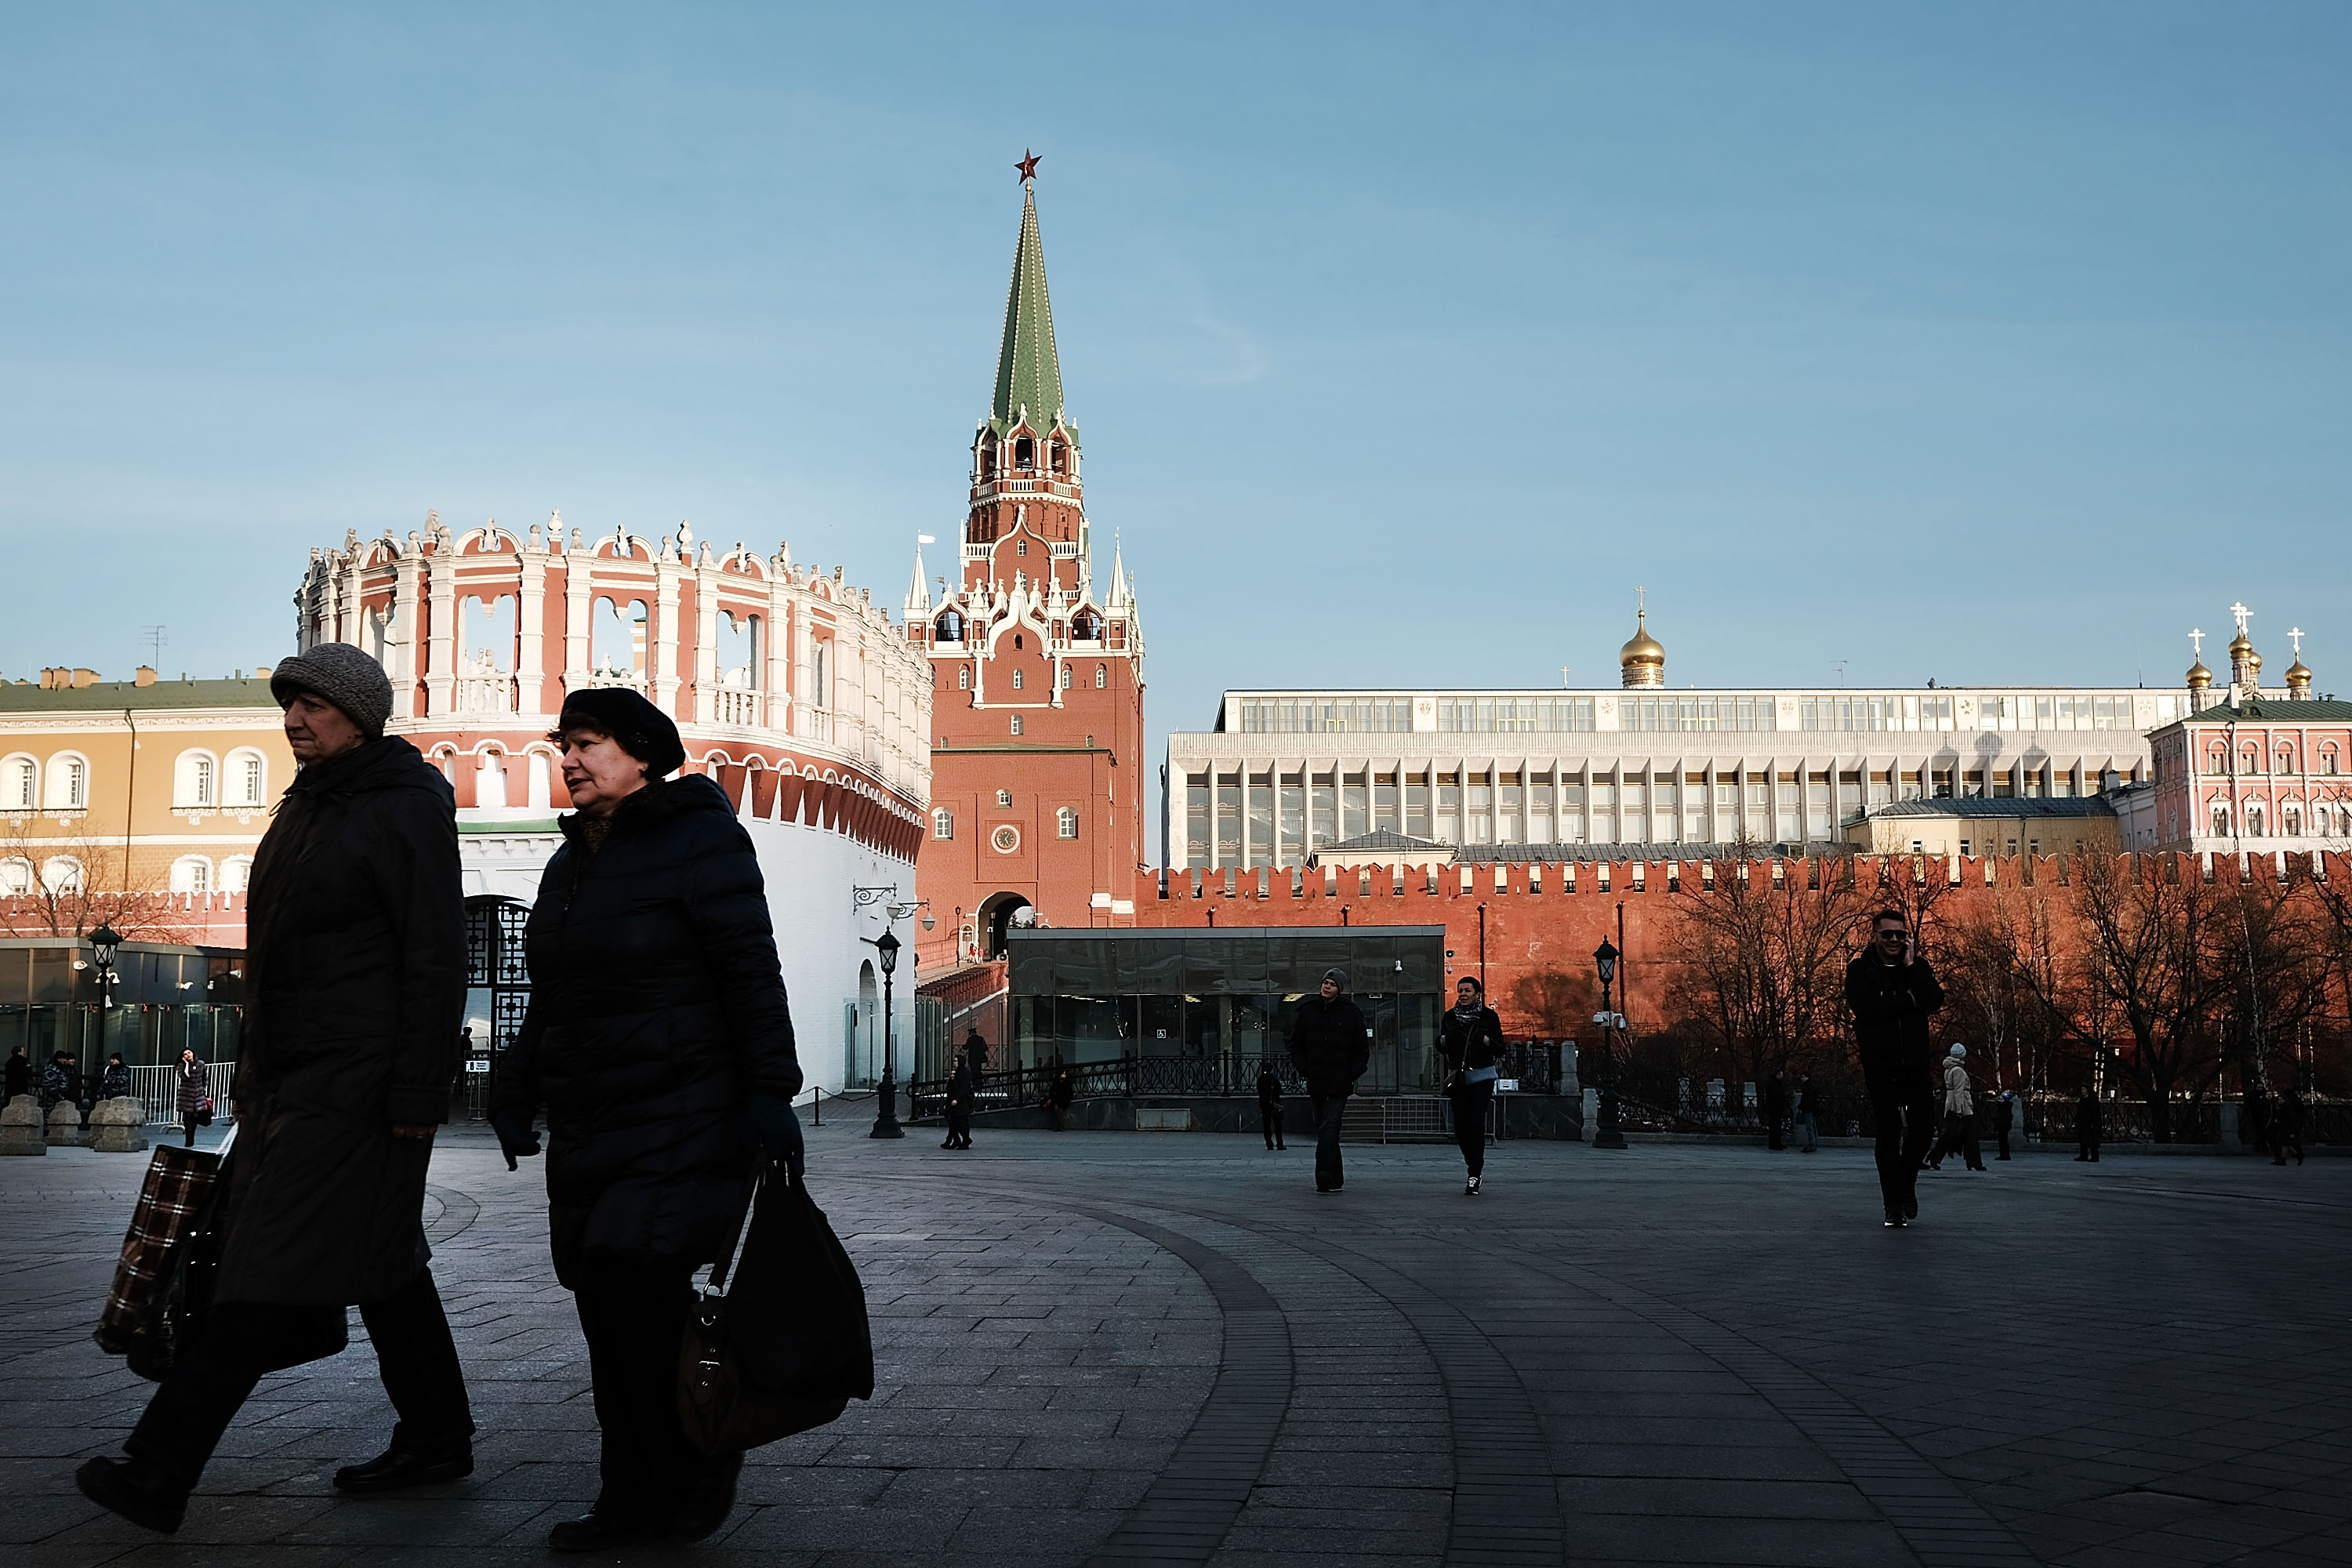 Woman passes by the entrance to the Kremlin on March 10, 2017 in Moscow, Russia.